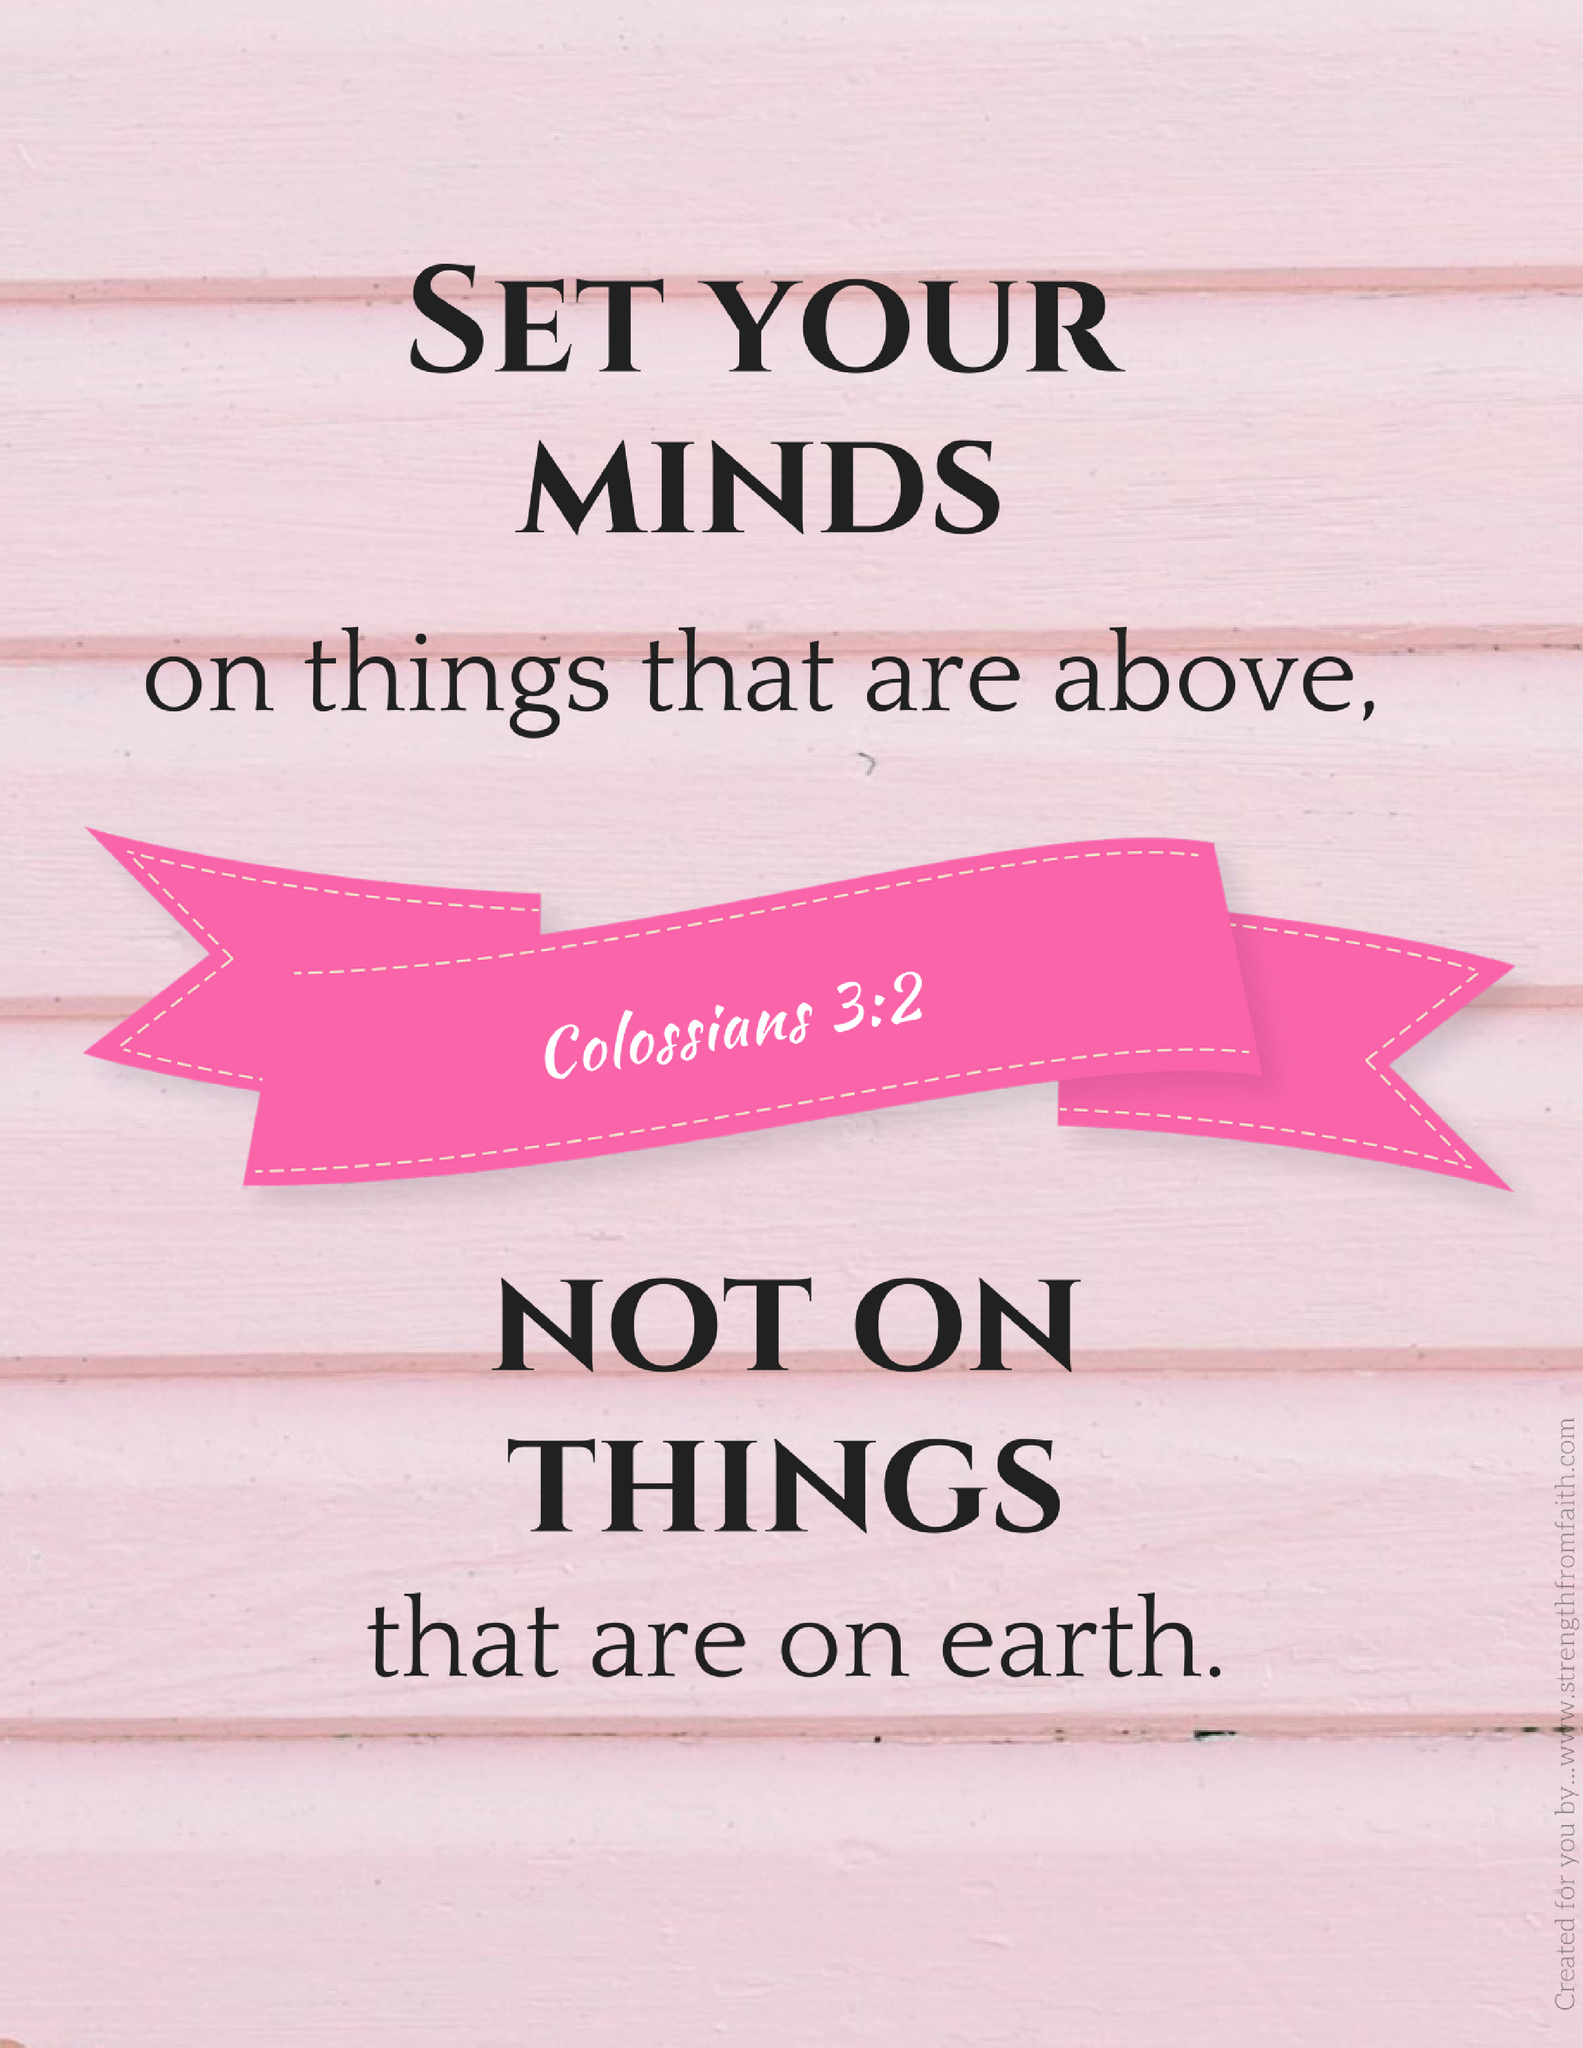 Printable Bible Verses...(Colossians 3 2)